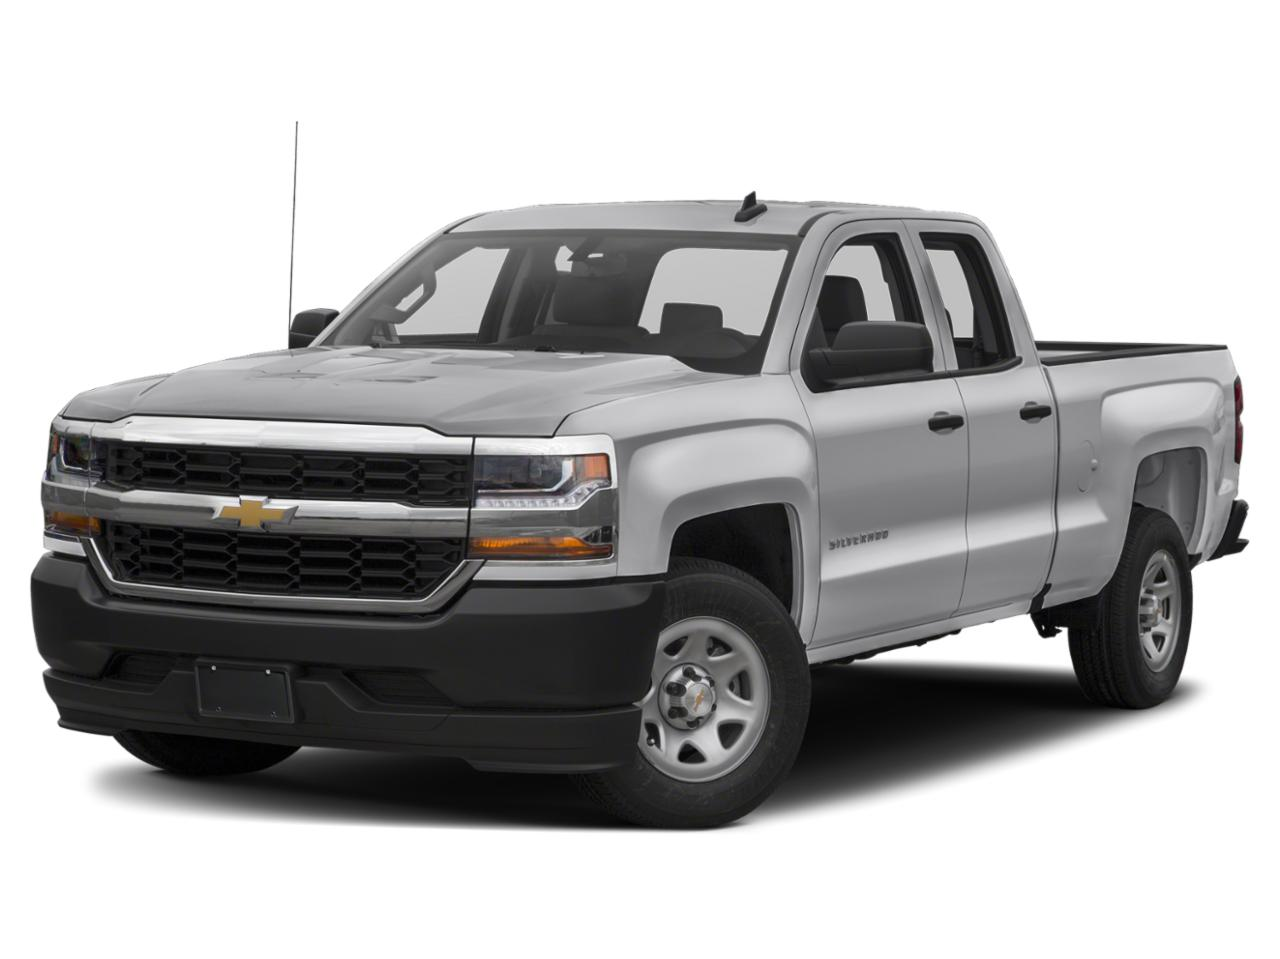 2019 Chevrolet Silverado 1500 LD Vehicle Photo in Owensboro, KY 42303